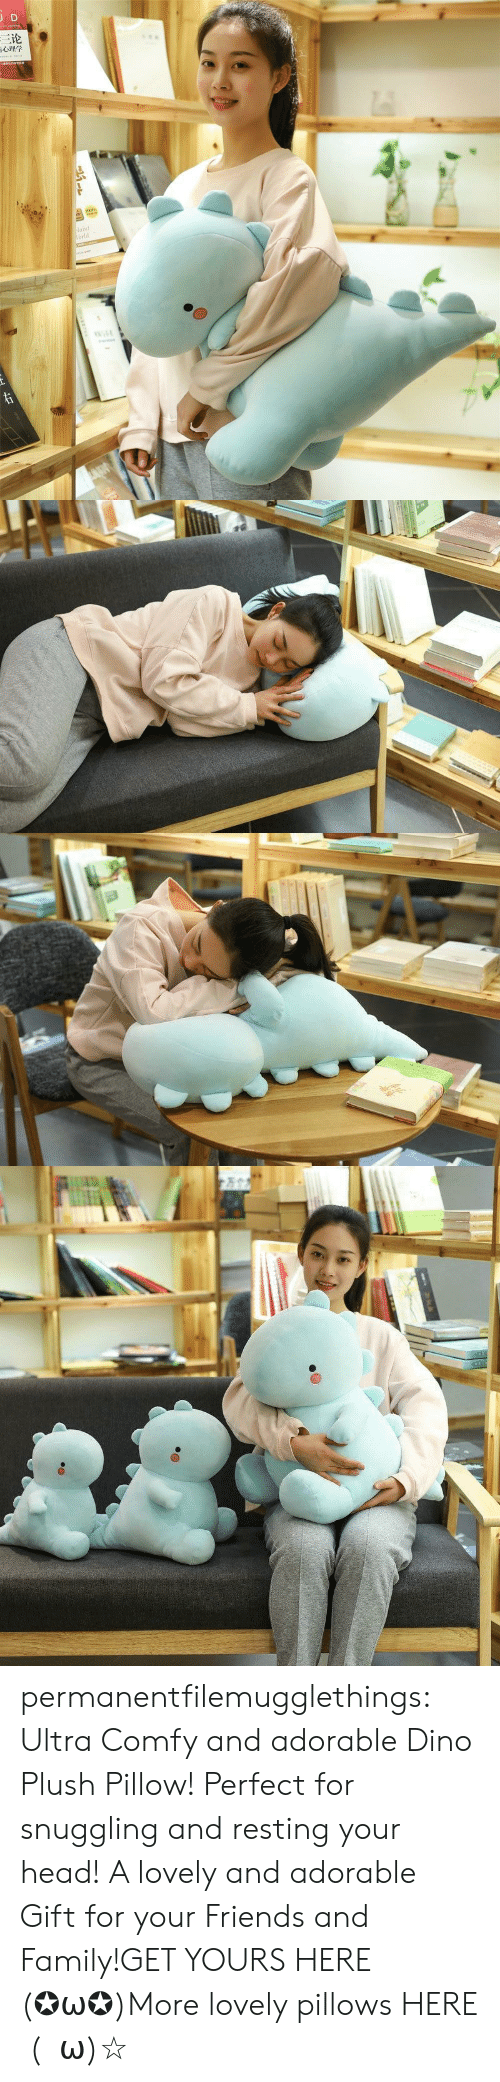 dino: JD  三论  laint  orld  TDNAR  ww.e permanentfilemugglethings:  Ultra Comfy and adorable Dino Plush Pillow! Perfect for snuggling and resting your head! A lovely and adorable Gift for your Friends and Family!GET YOURS HERE (✪ω✪)More lovely pillows HERE  (・ω)☆